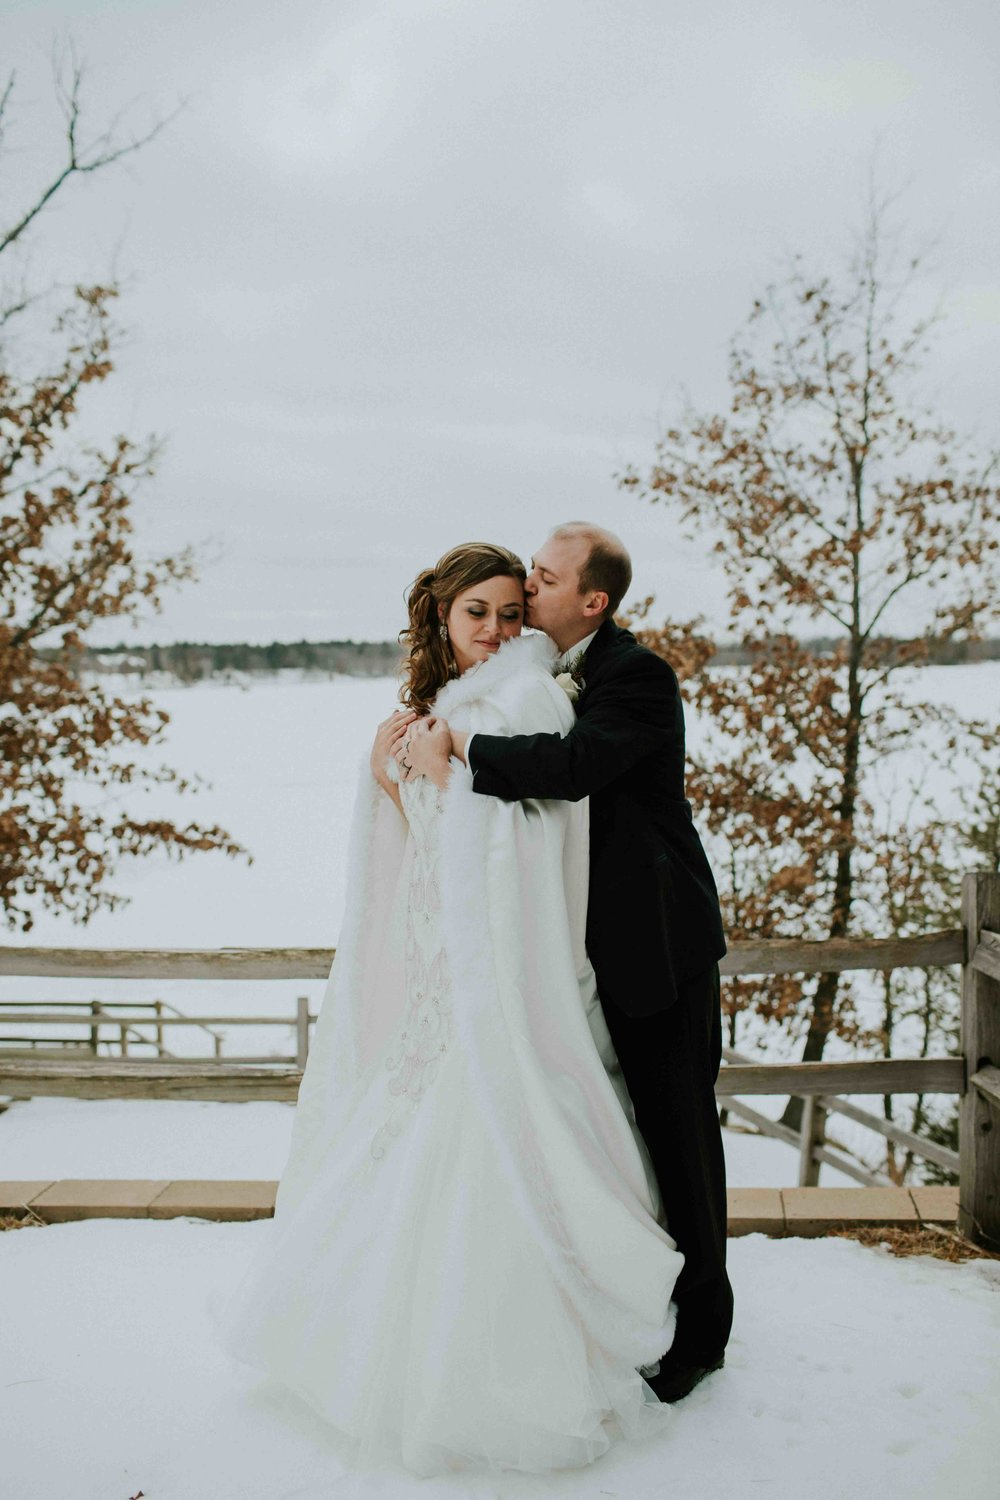 Justin + Anne | Winter Wedding | The YMCA Camp Alexander Wisconsin ...